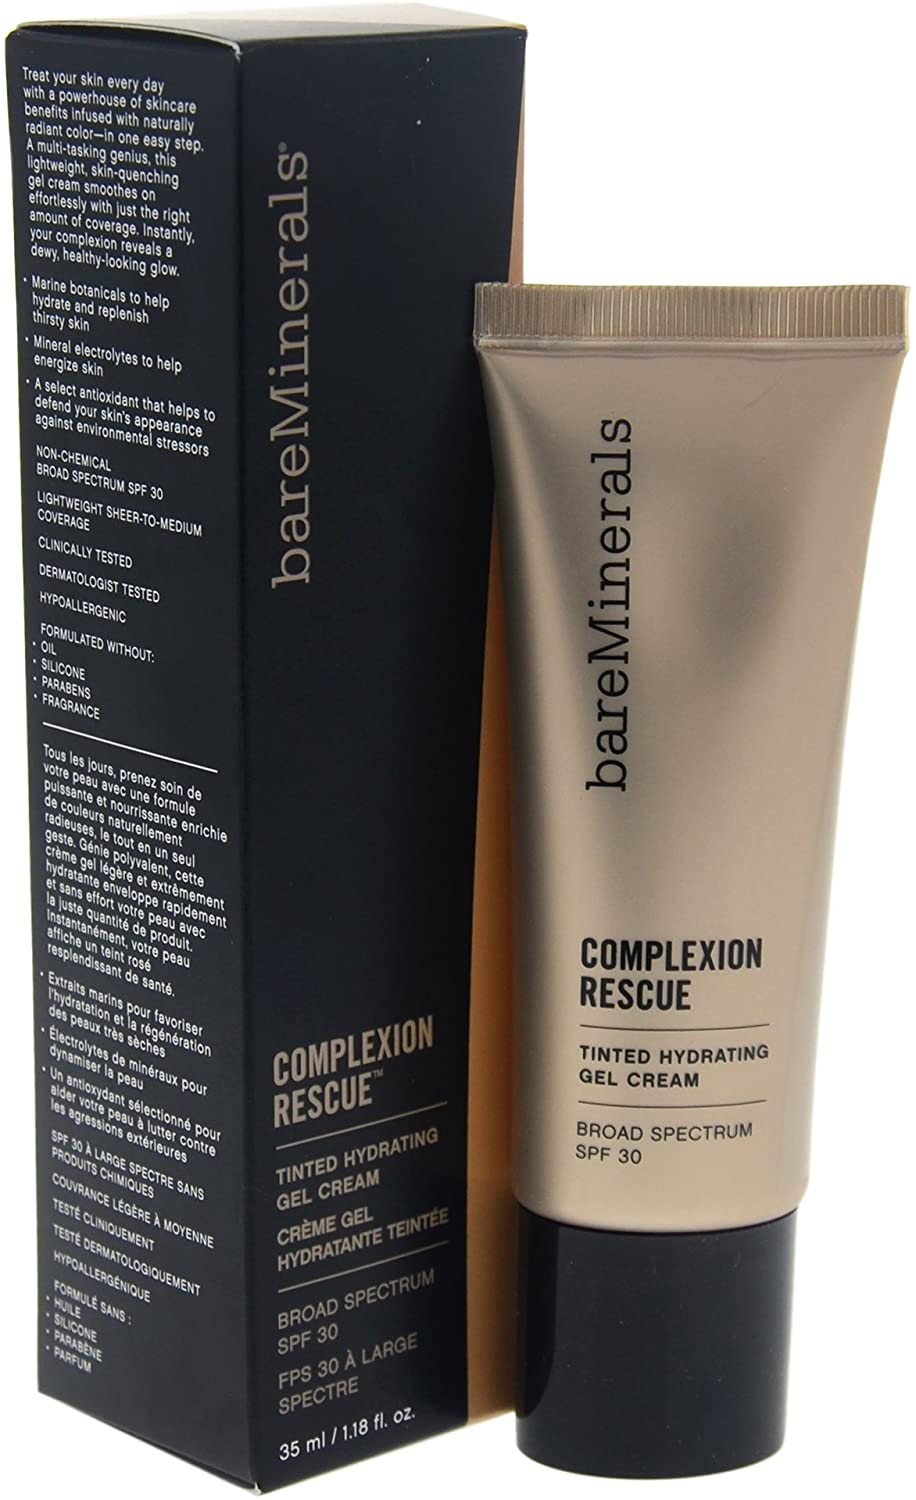 complexion rescue™ tinted moisturizer - hydrating gel cream broad spectrum spf 30